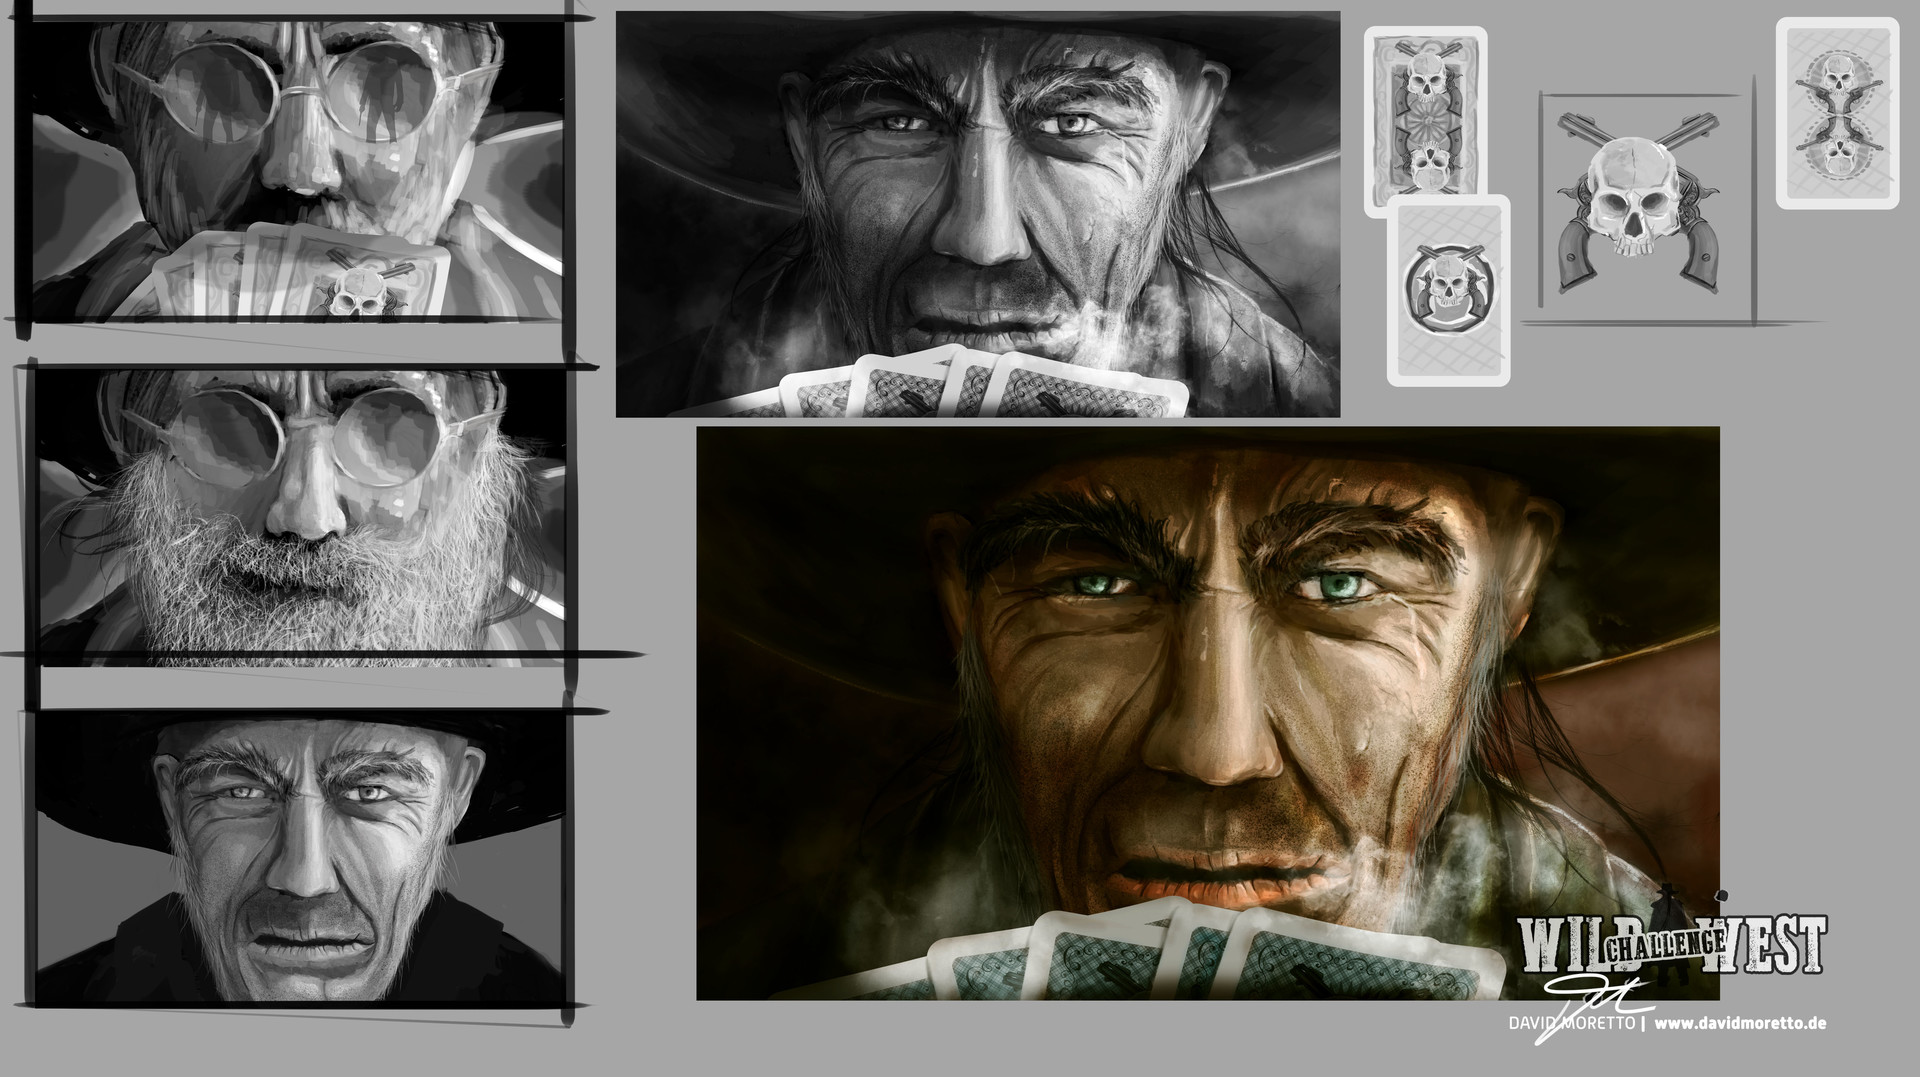 David moretto wild west pokerface concept